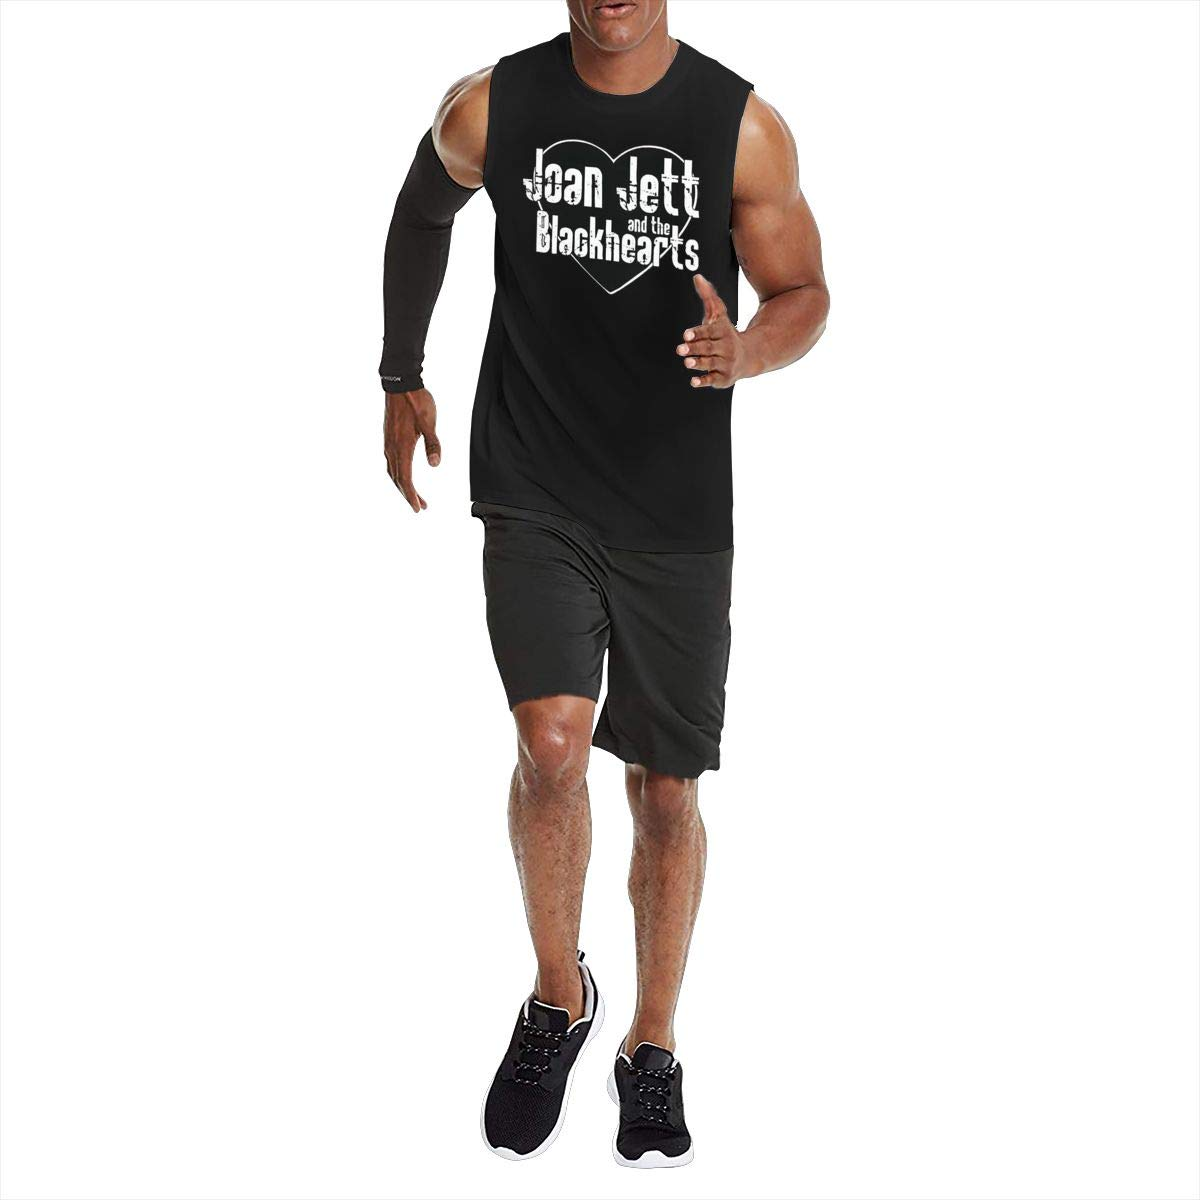 KABASHIJI Joan-Jett-and-The-Blackhearts Mens Tank-Top Sleeveless T Shirt 100/% Cotton Bodybuilding Tshirt Black